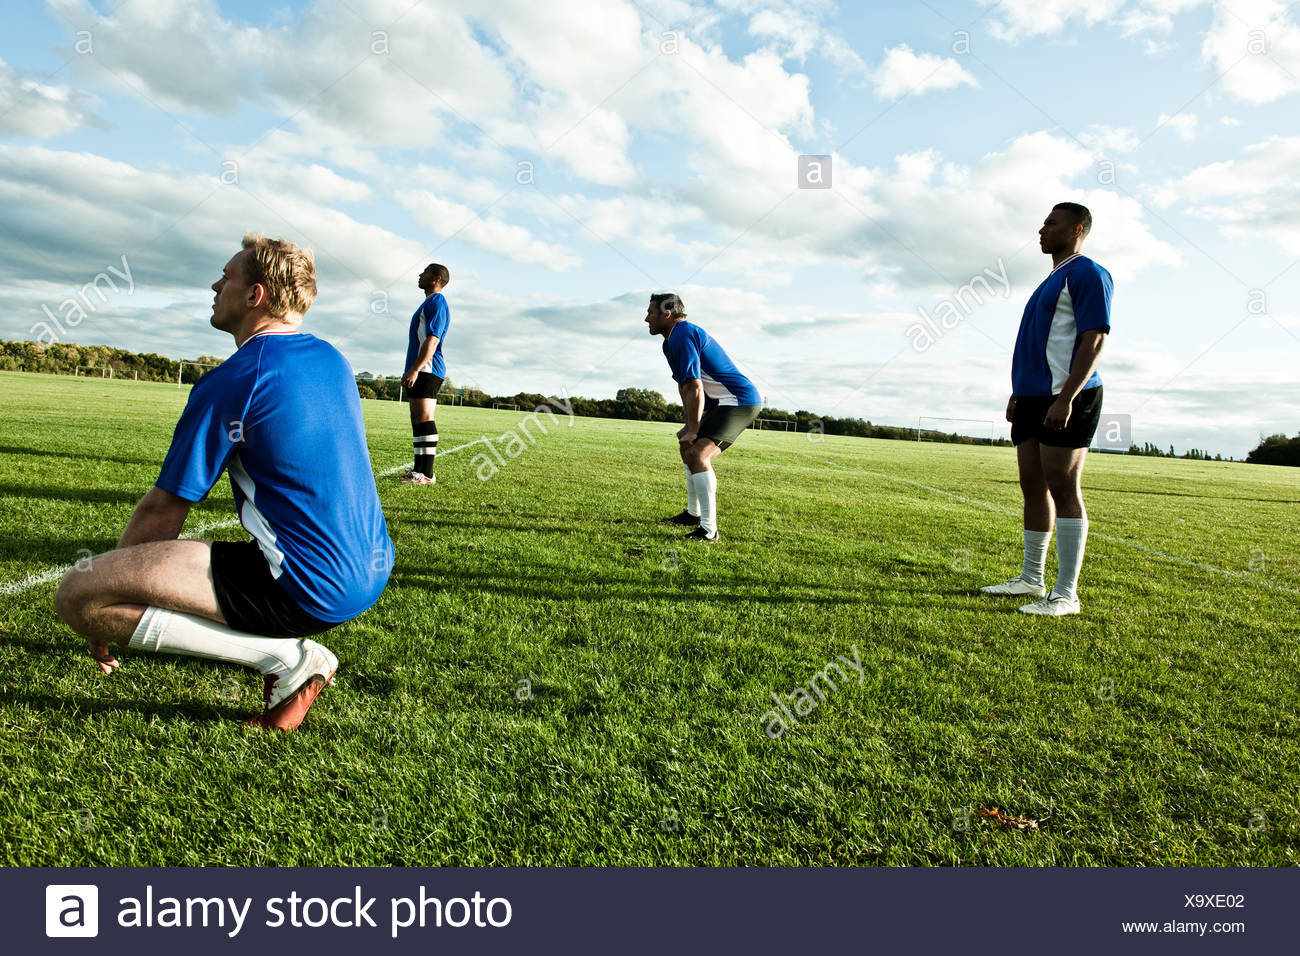 Soccer players standing on pitch - Stock Image